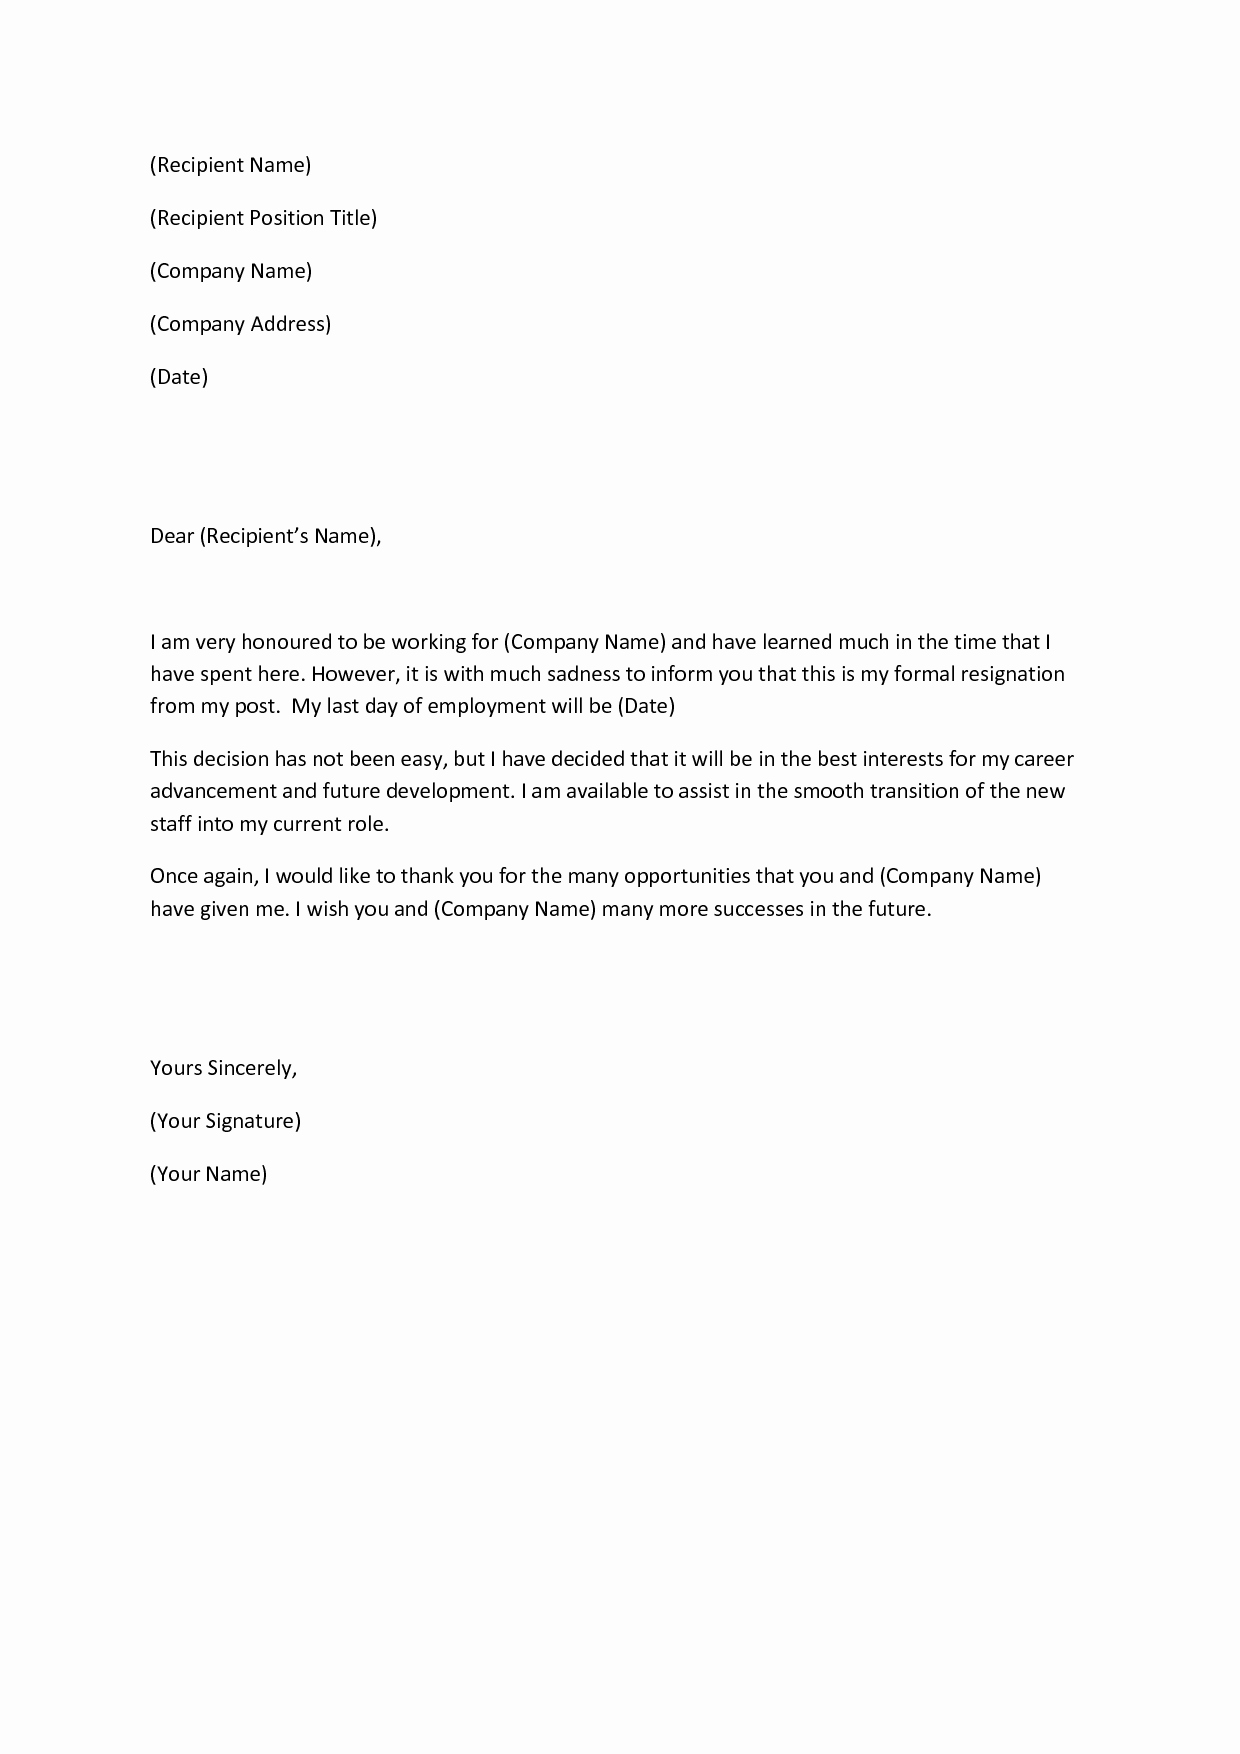 Job Transition Email Template Fresh This Article Will Include Multiple Sample Letters for